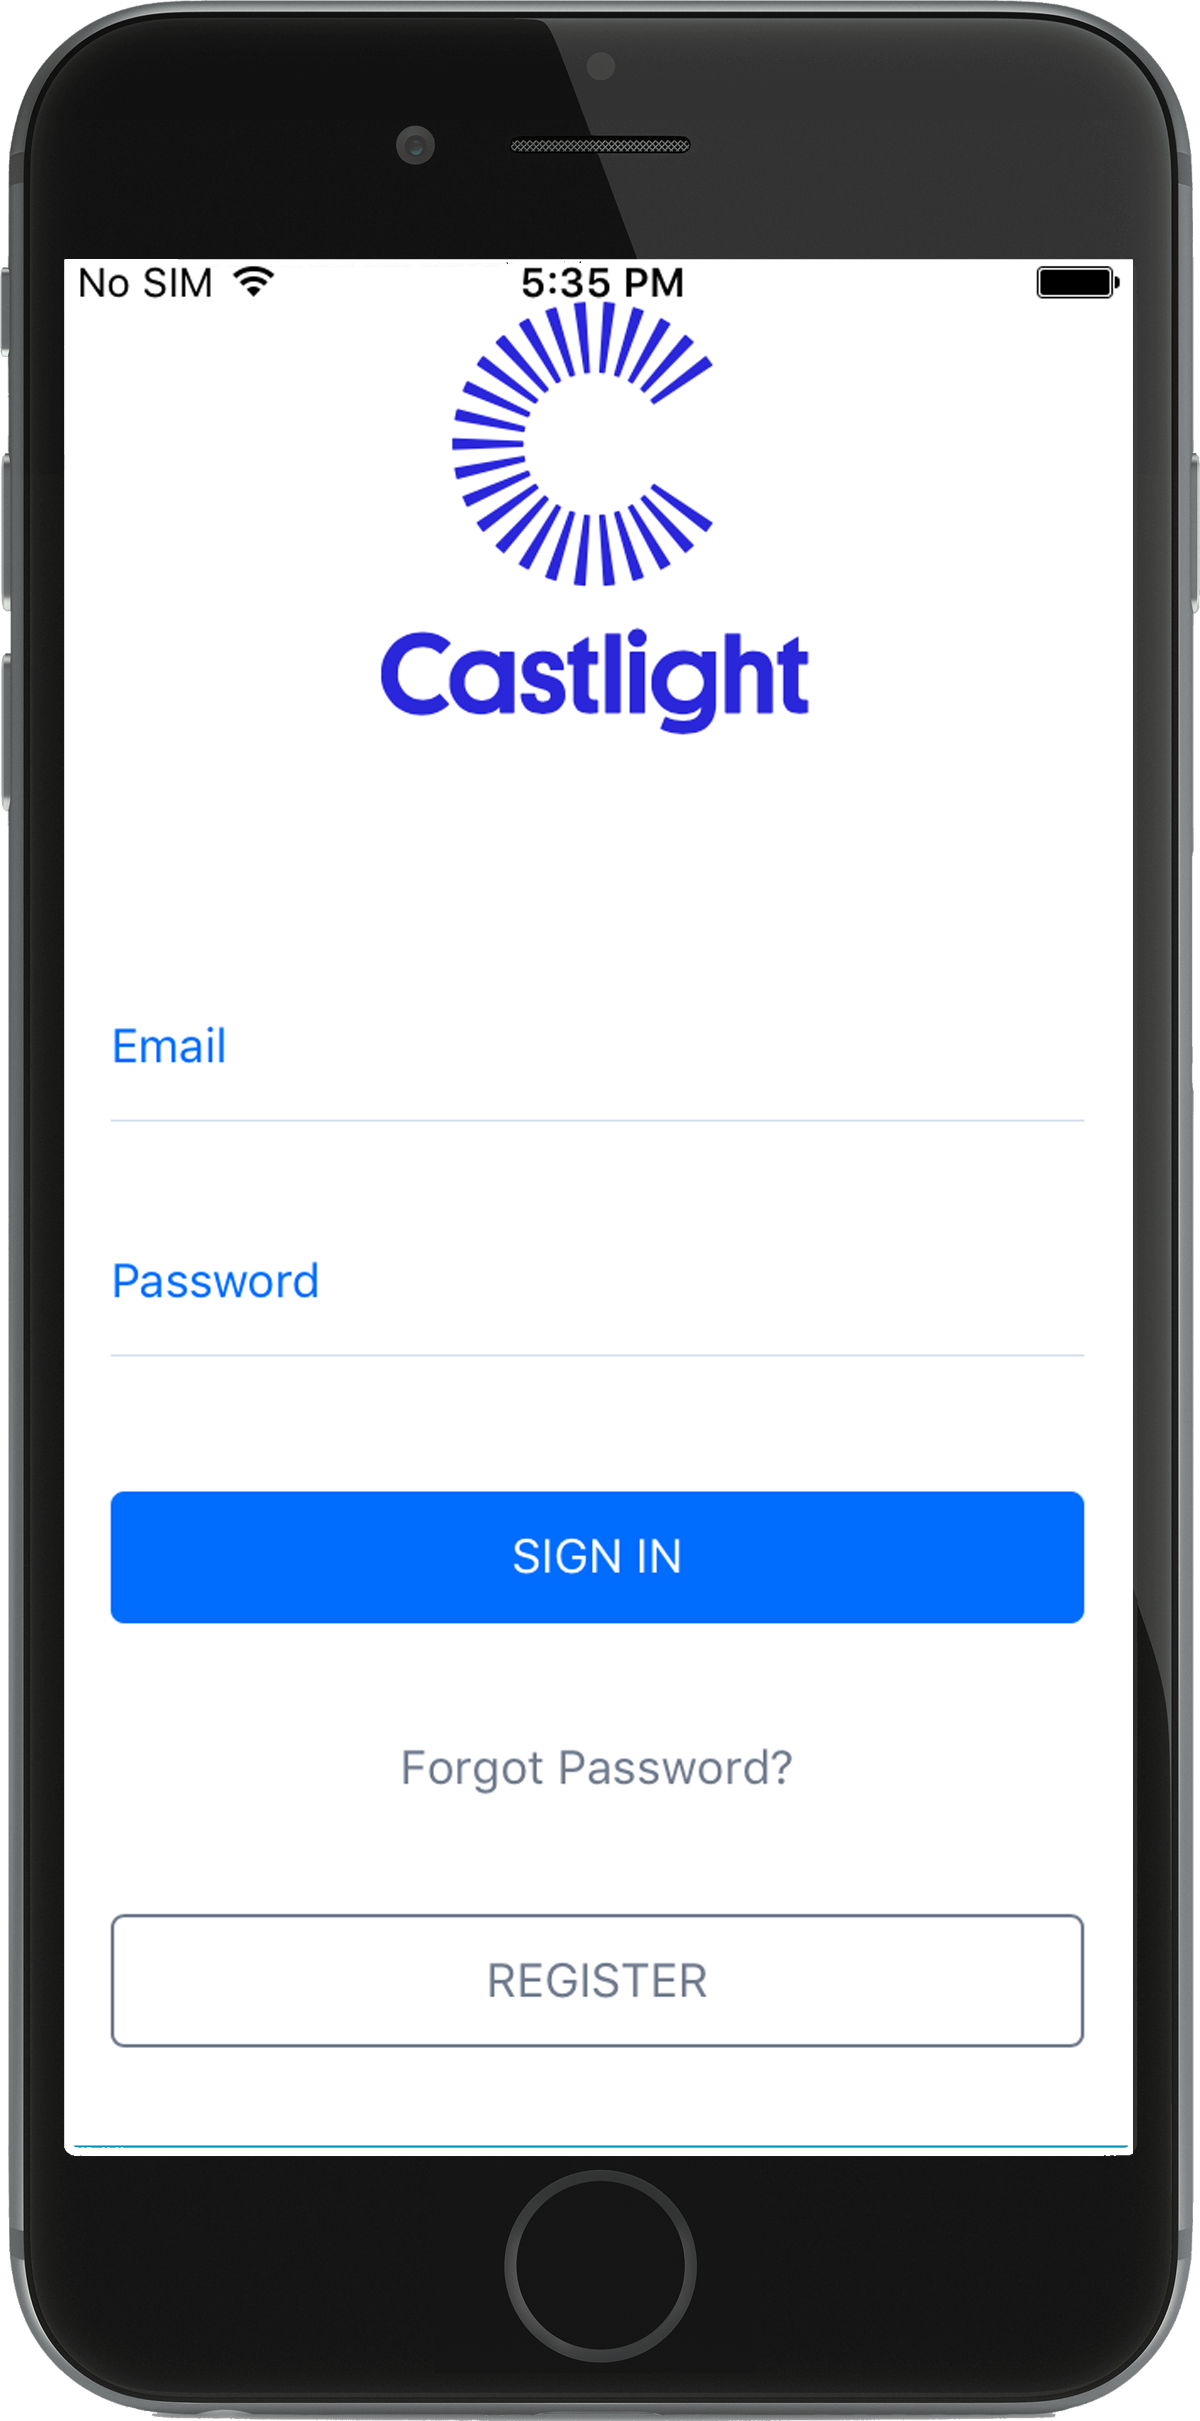 1 Castlight Login screen in phone.png